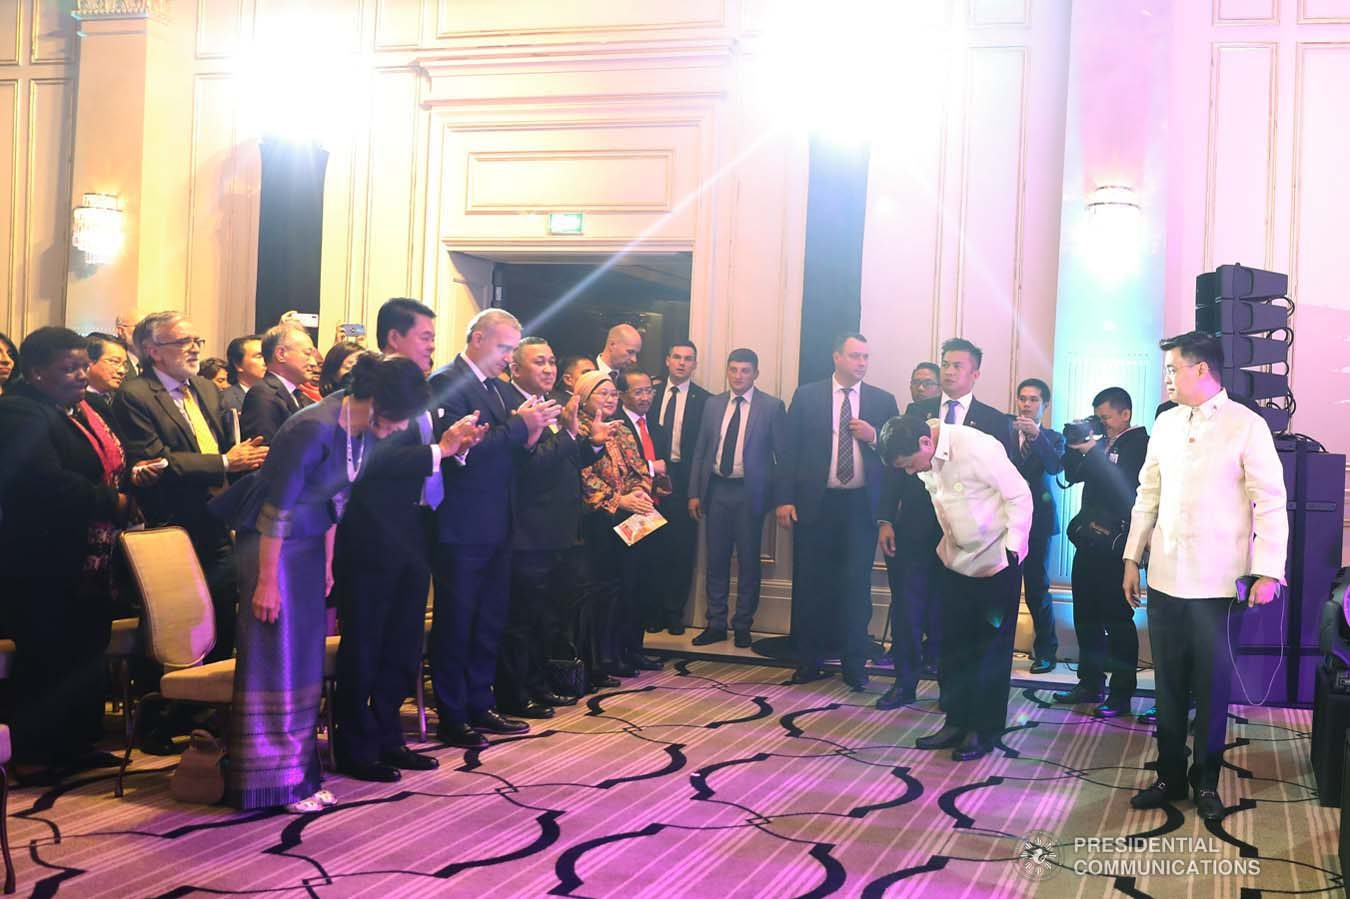 President Rodrigo Roa Duterte takes a bow before the guests during the Philippine Cultural Gala Performance at the Four Seasons Hotel in Moscow, Russian Federation on October 4, 2019. ALFRED FRIAS/PRESIDENTIAL PHOTO